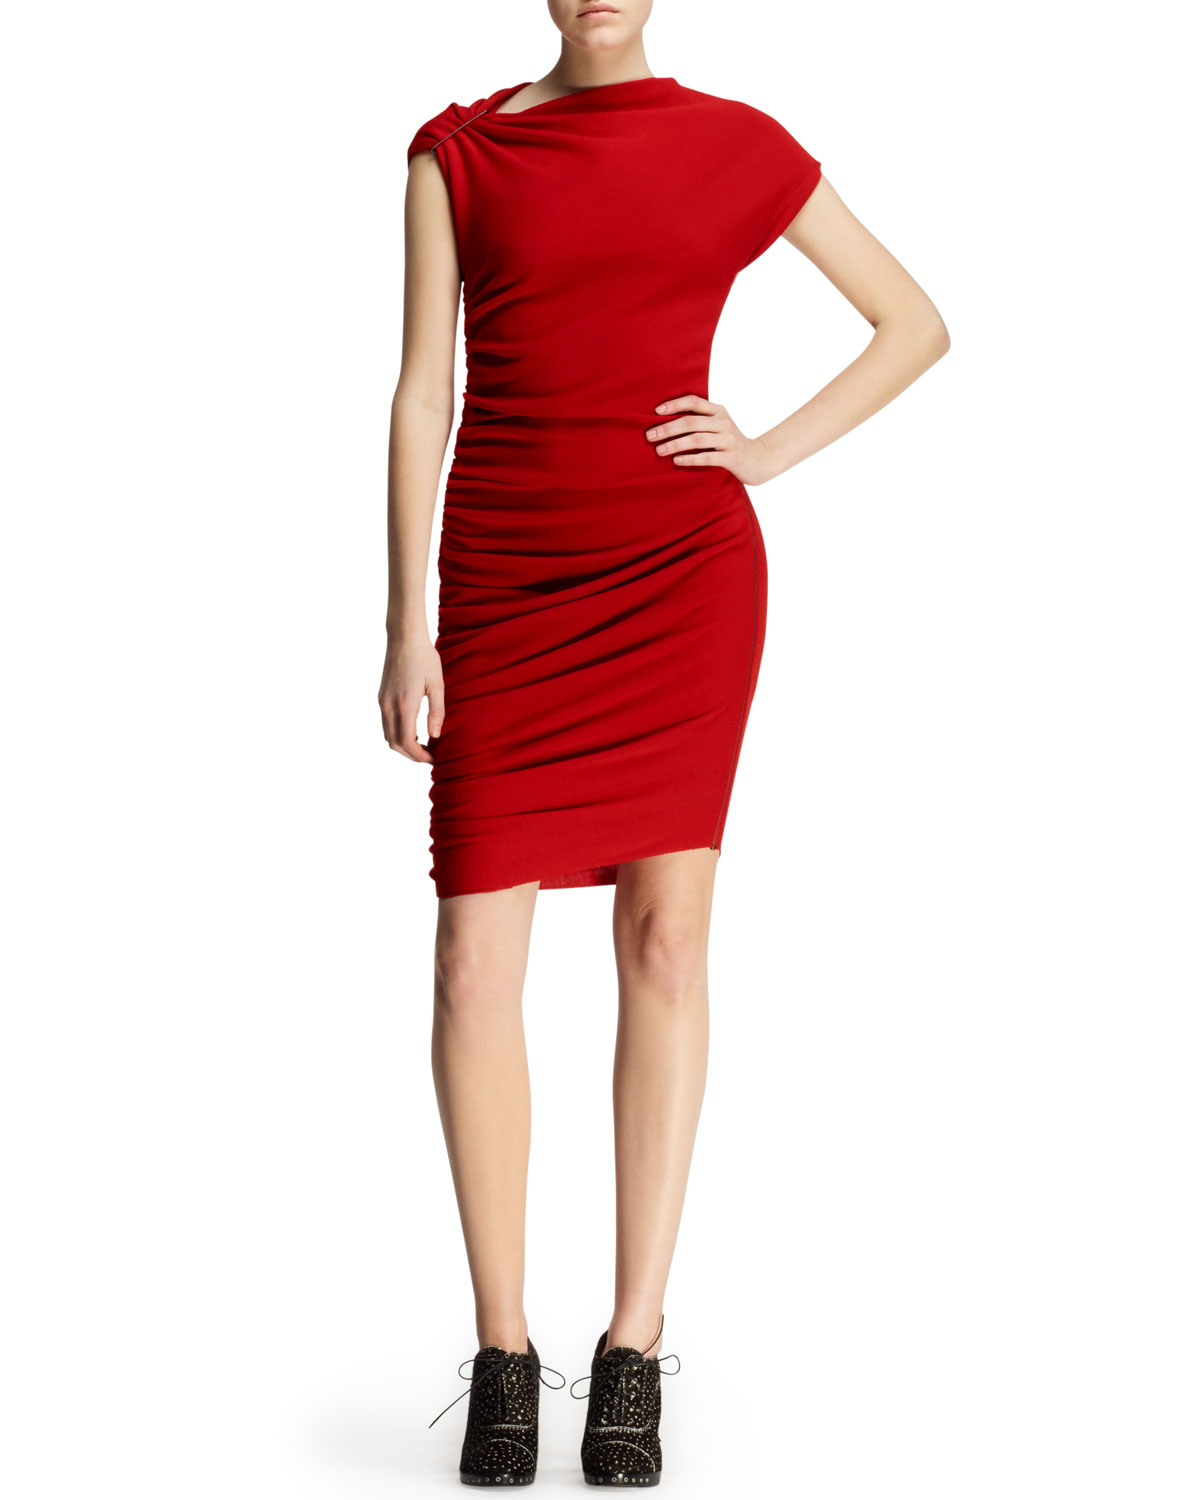 Womens Ruched Pin Shoulder Jersey Dress   Lanvin   Red (40US8)